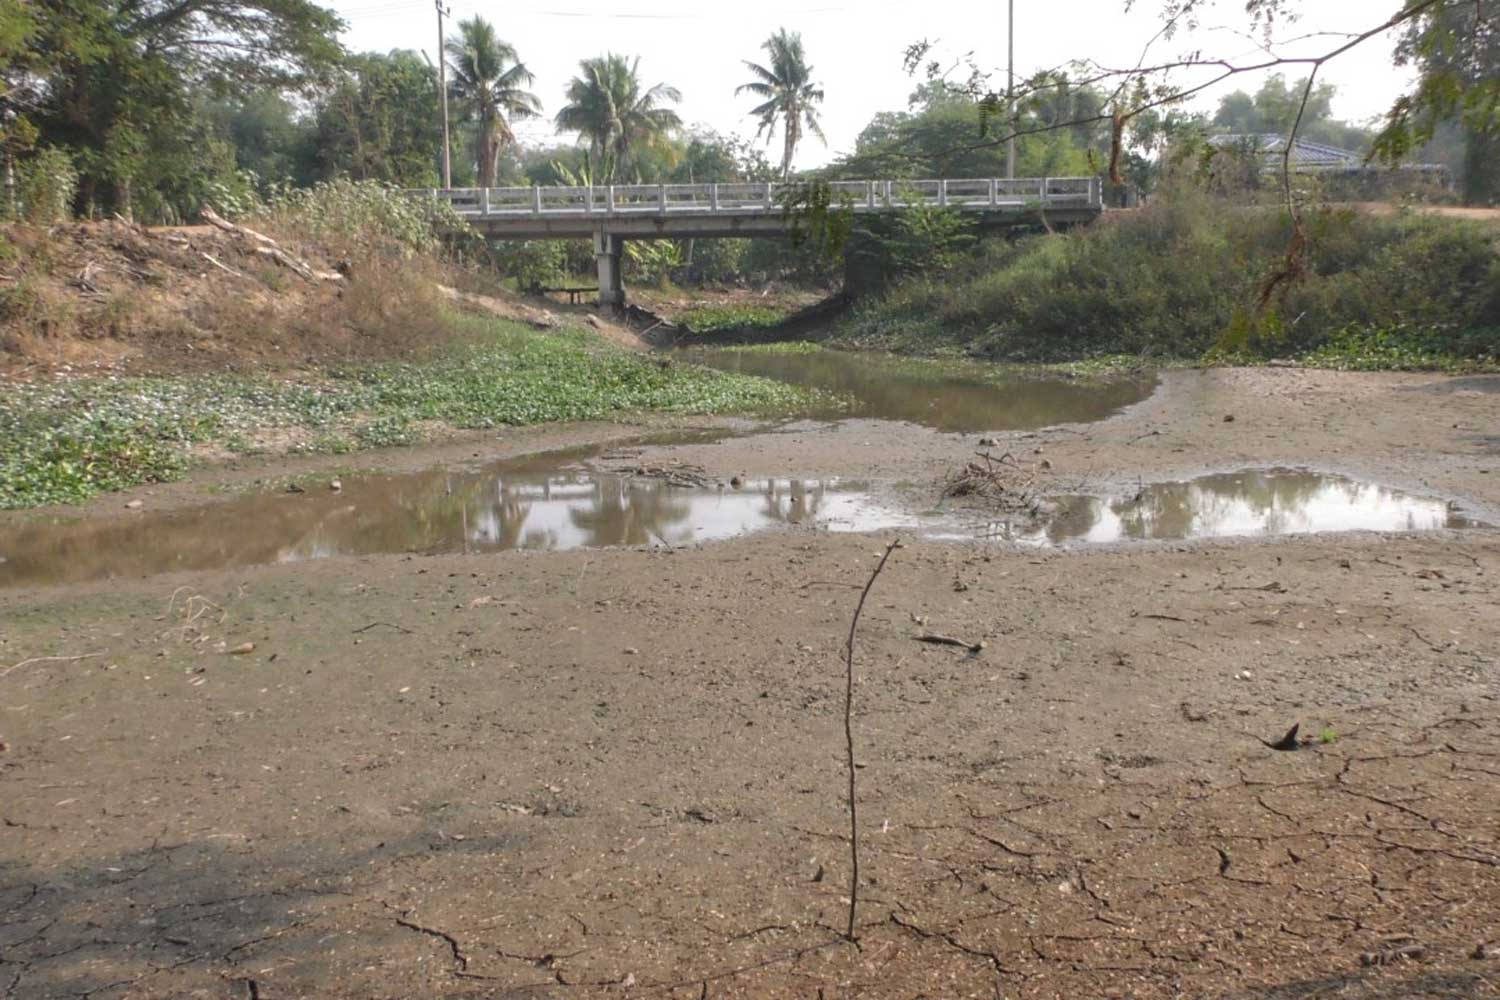 Klong Ban Nong canal has dried out at Moo 12 village of tambon Suea Hok in Muang district of Chai Nat province. The Royal Irrigation Department has been ordered to divert water from the west to hold back seawater creeping up into the Chao Phraya basin. (Photo by Chudet Seehawong)